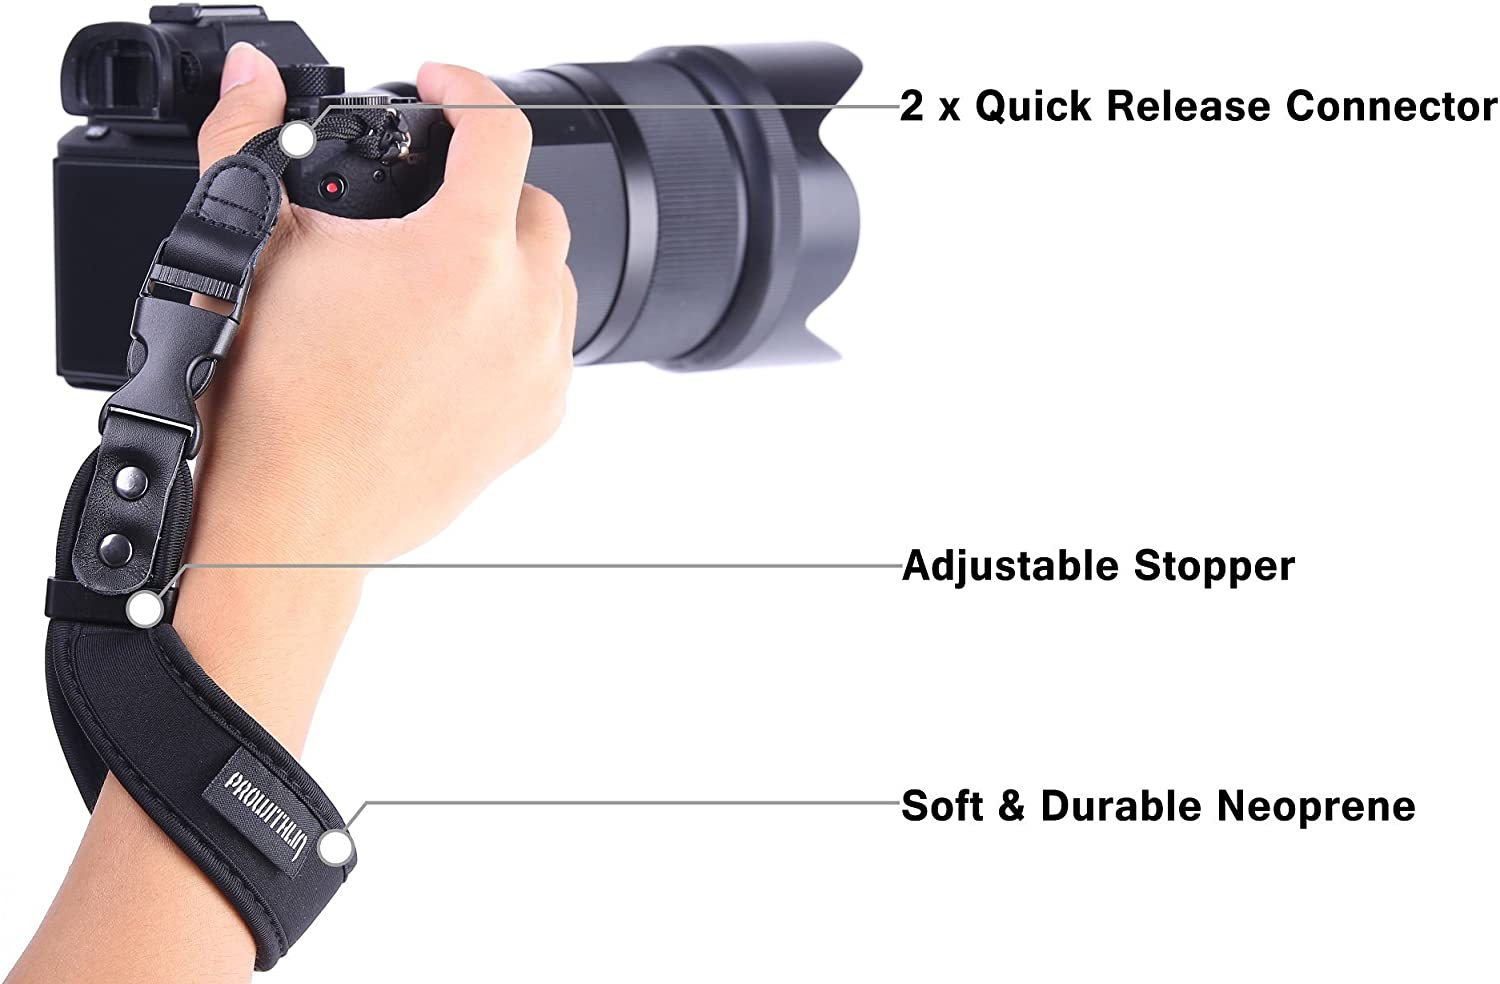 Neoprene Camera Hand Strap Durable Quick Release Grip Strap with Safety Tether for Canon Fujifilm Nikon Sony Pentax Olympus and More DSLR Mirrorless Point Shoot Cameras Zecti Camera Wrist Strap